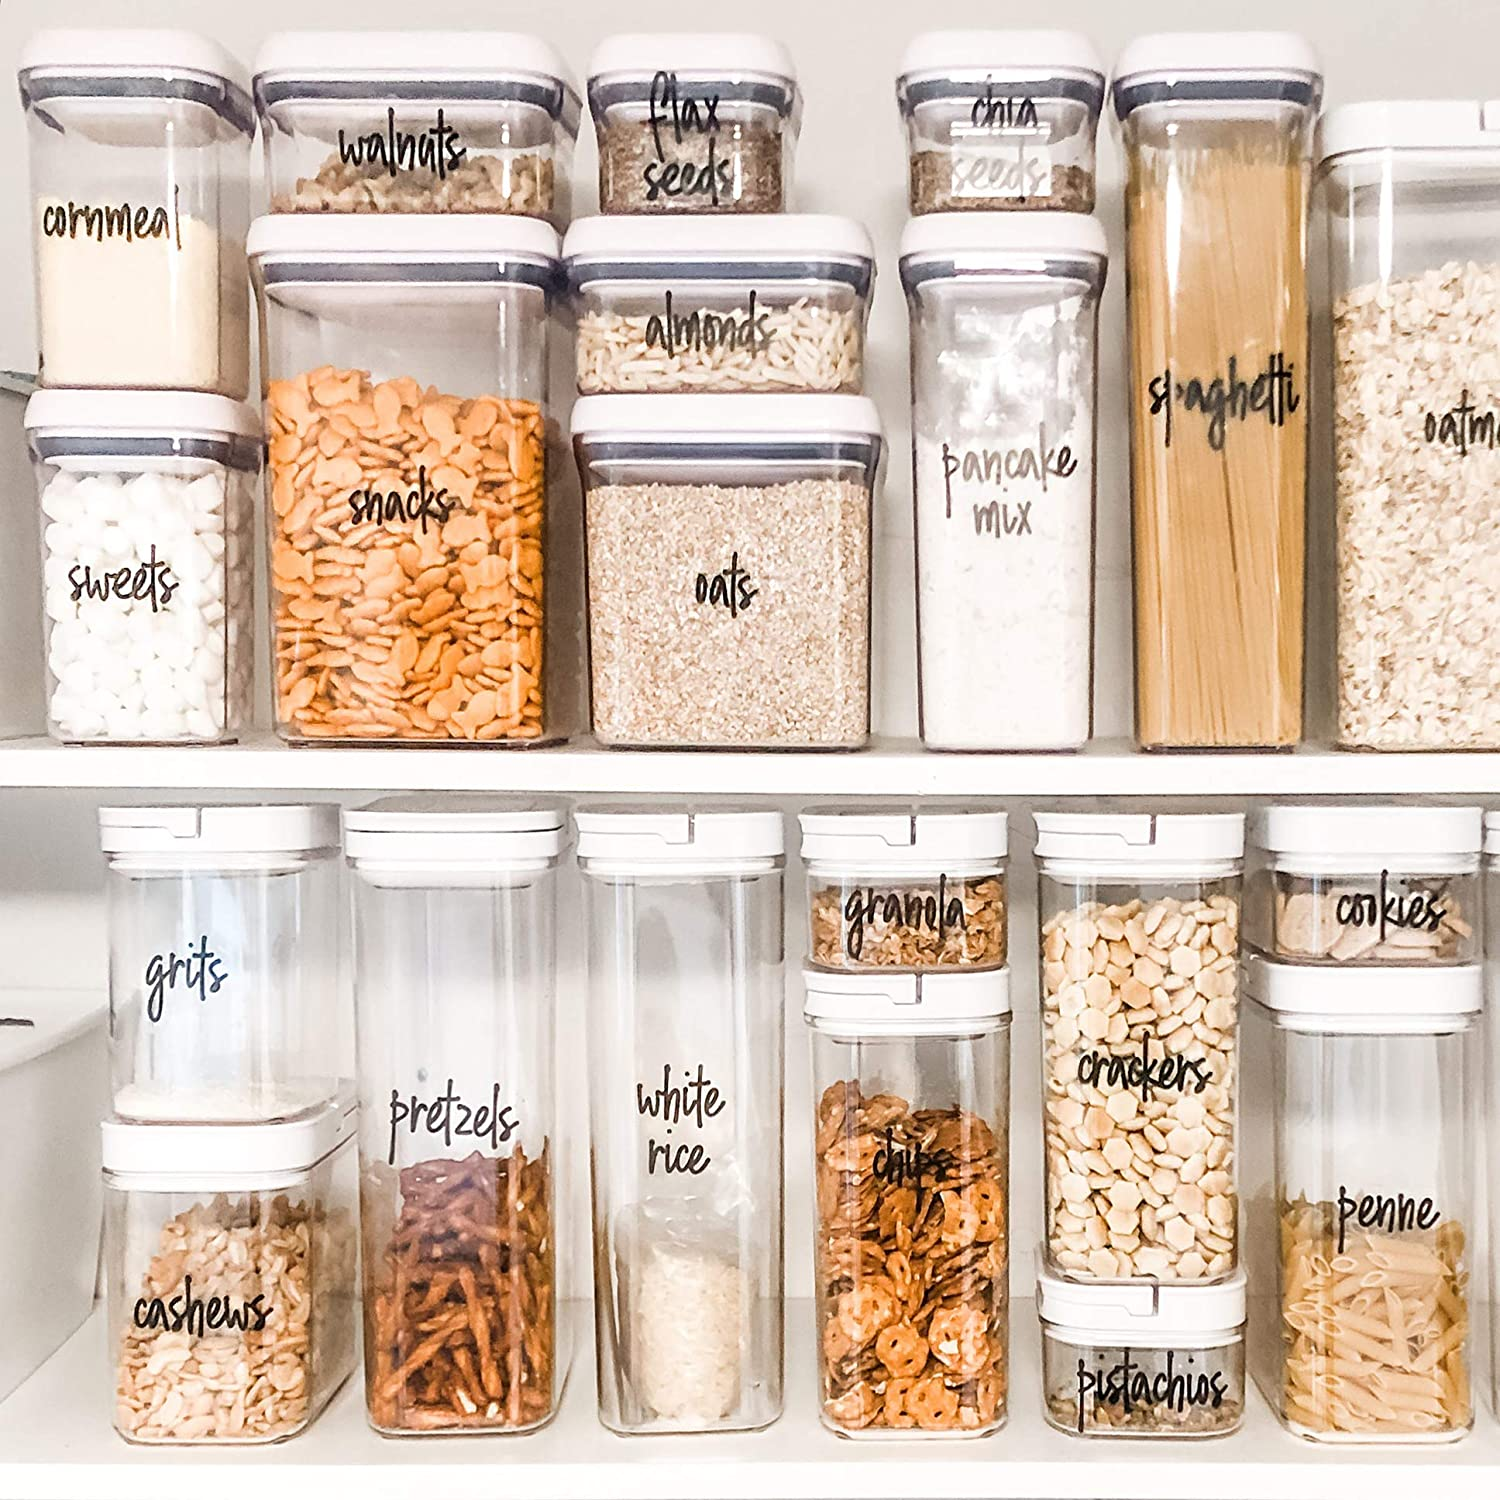 These Ingredient Labels Will Make Your Pantry Look Organized in 5 Minutes